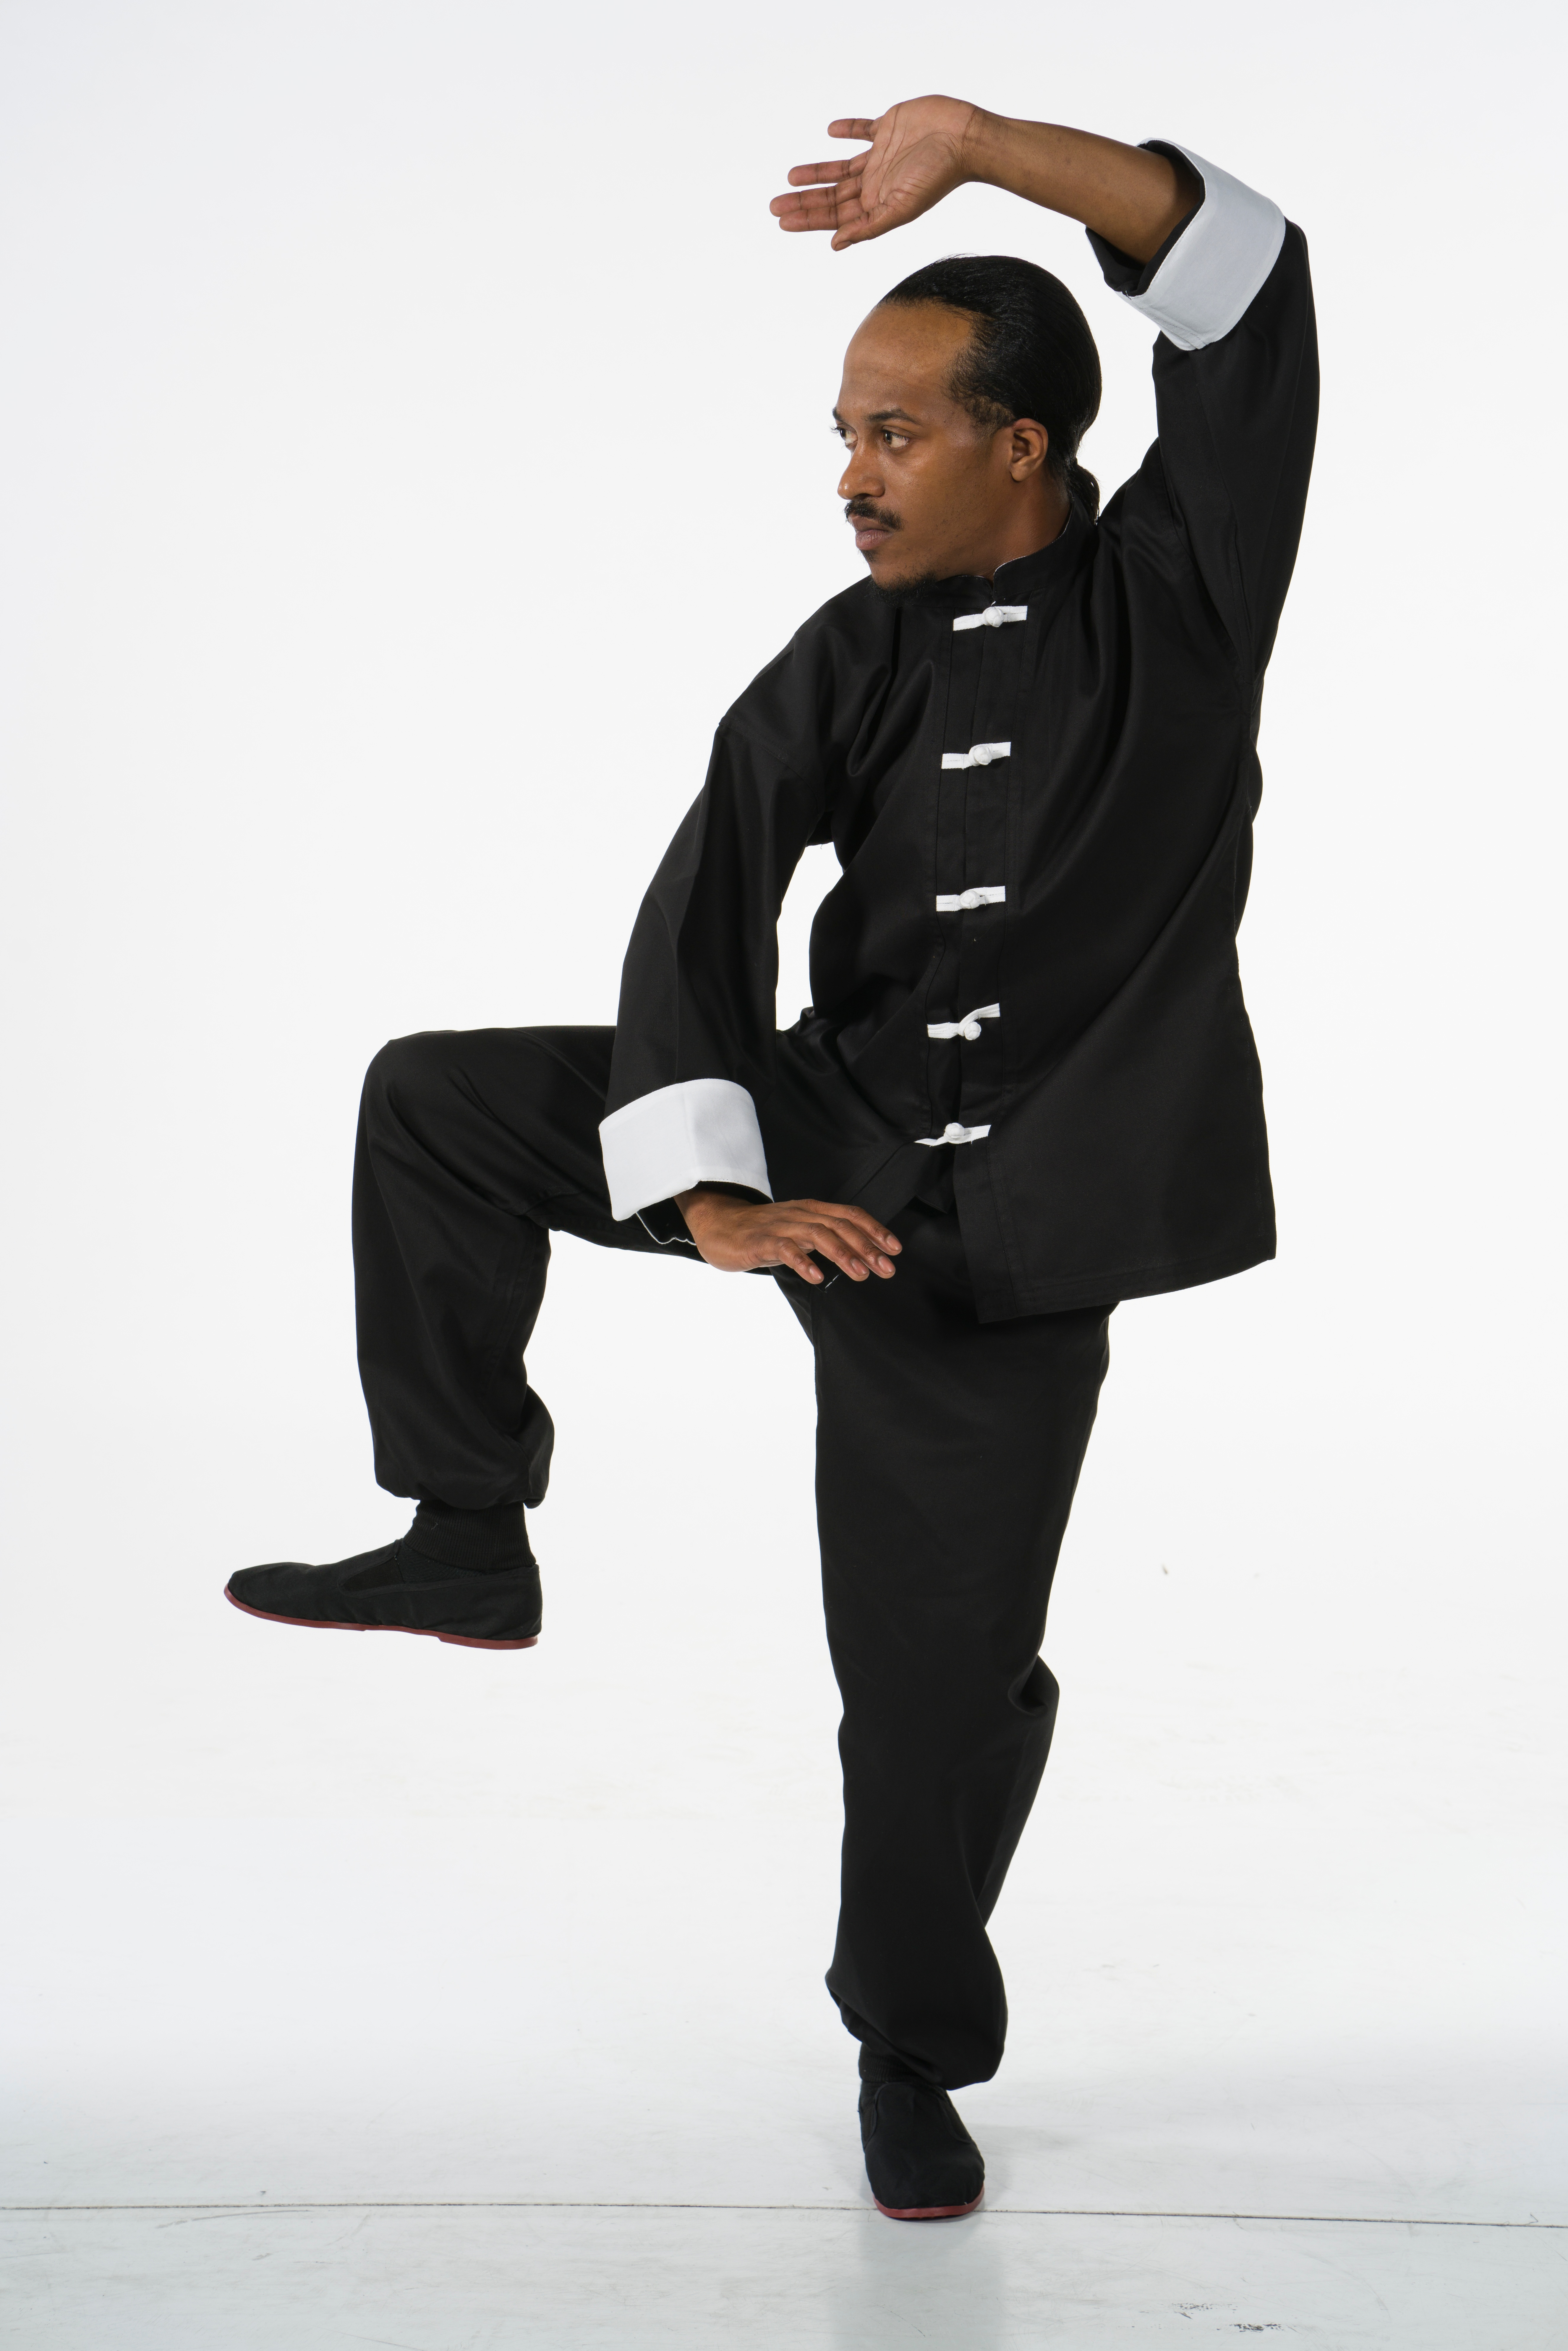 A traditional kung fu uniform. Rob Campbell (pictured) is the sifu of Kung Fu San Soo in Oklahoma City.